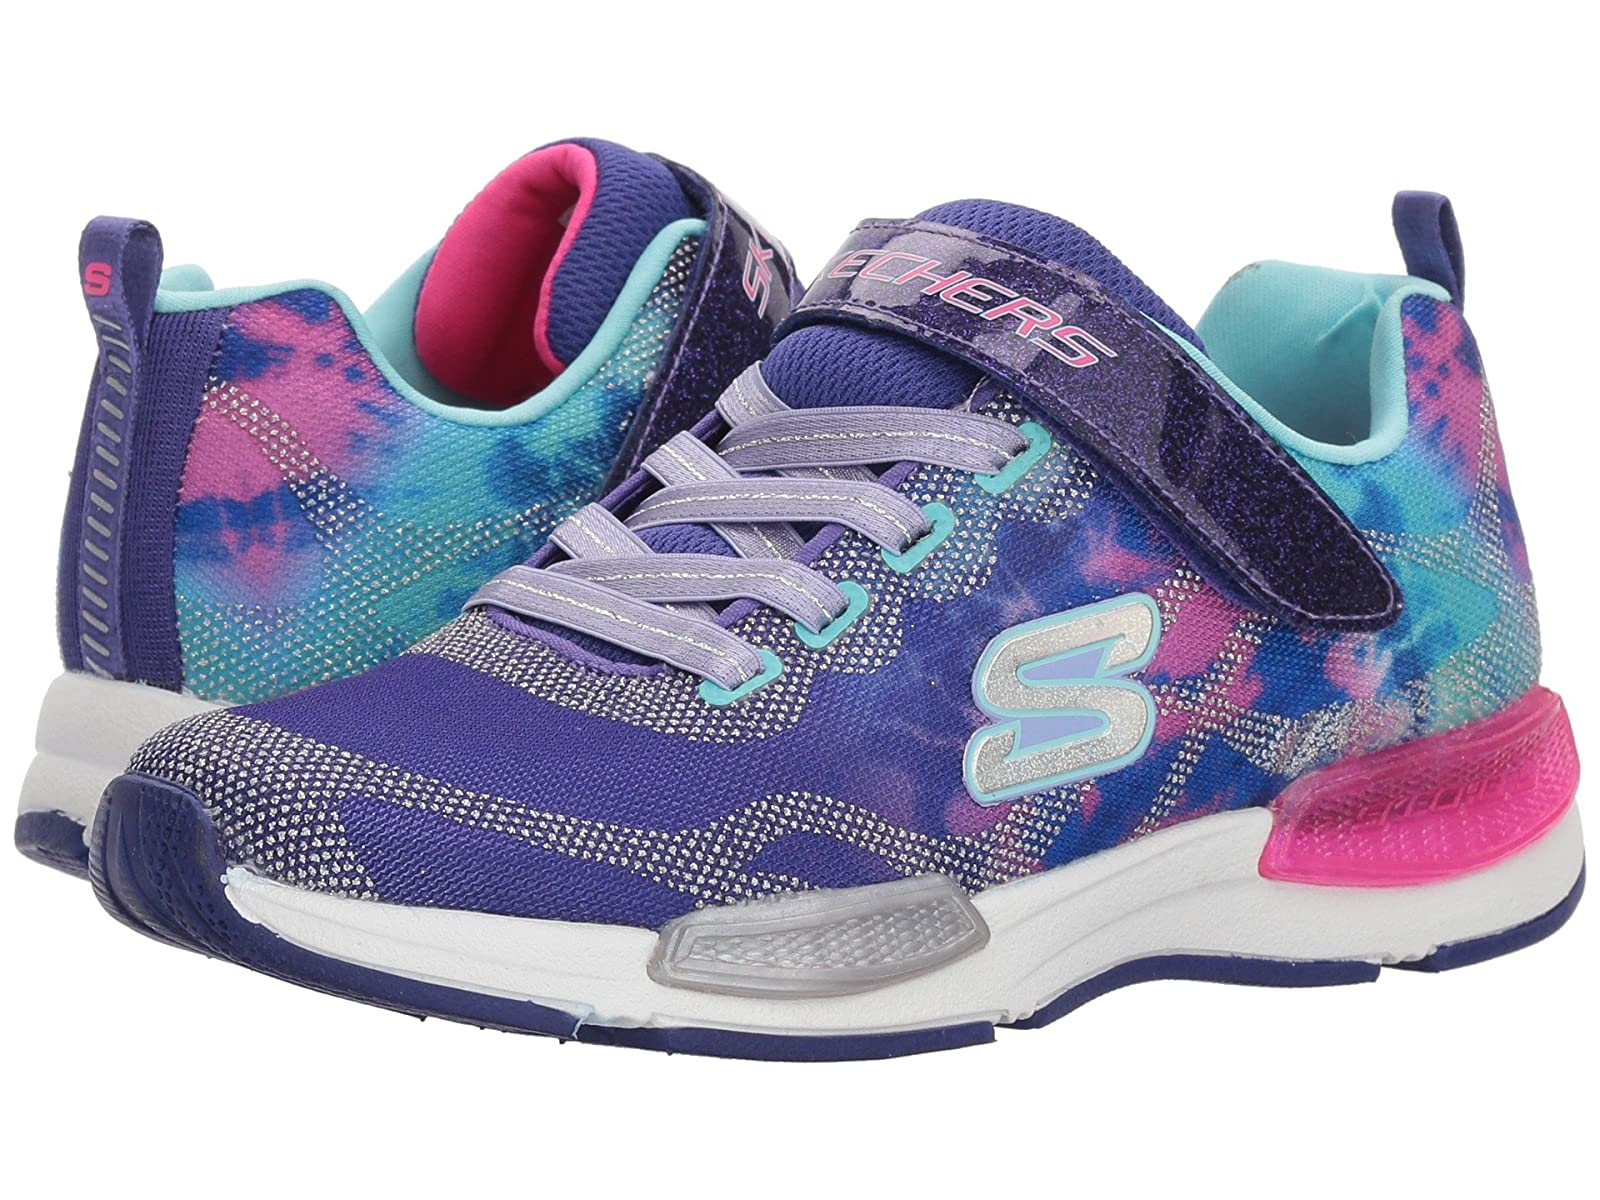 SKECHERS KIDS Jumptech 81514L (Little Kid/Big Kid)Atmospheric grades have affordable shoes